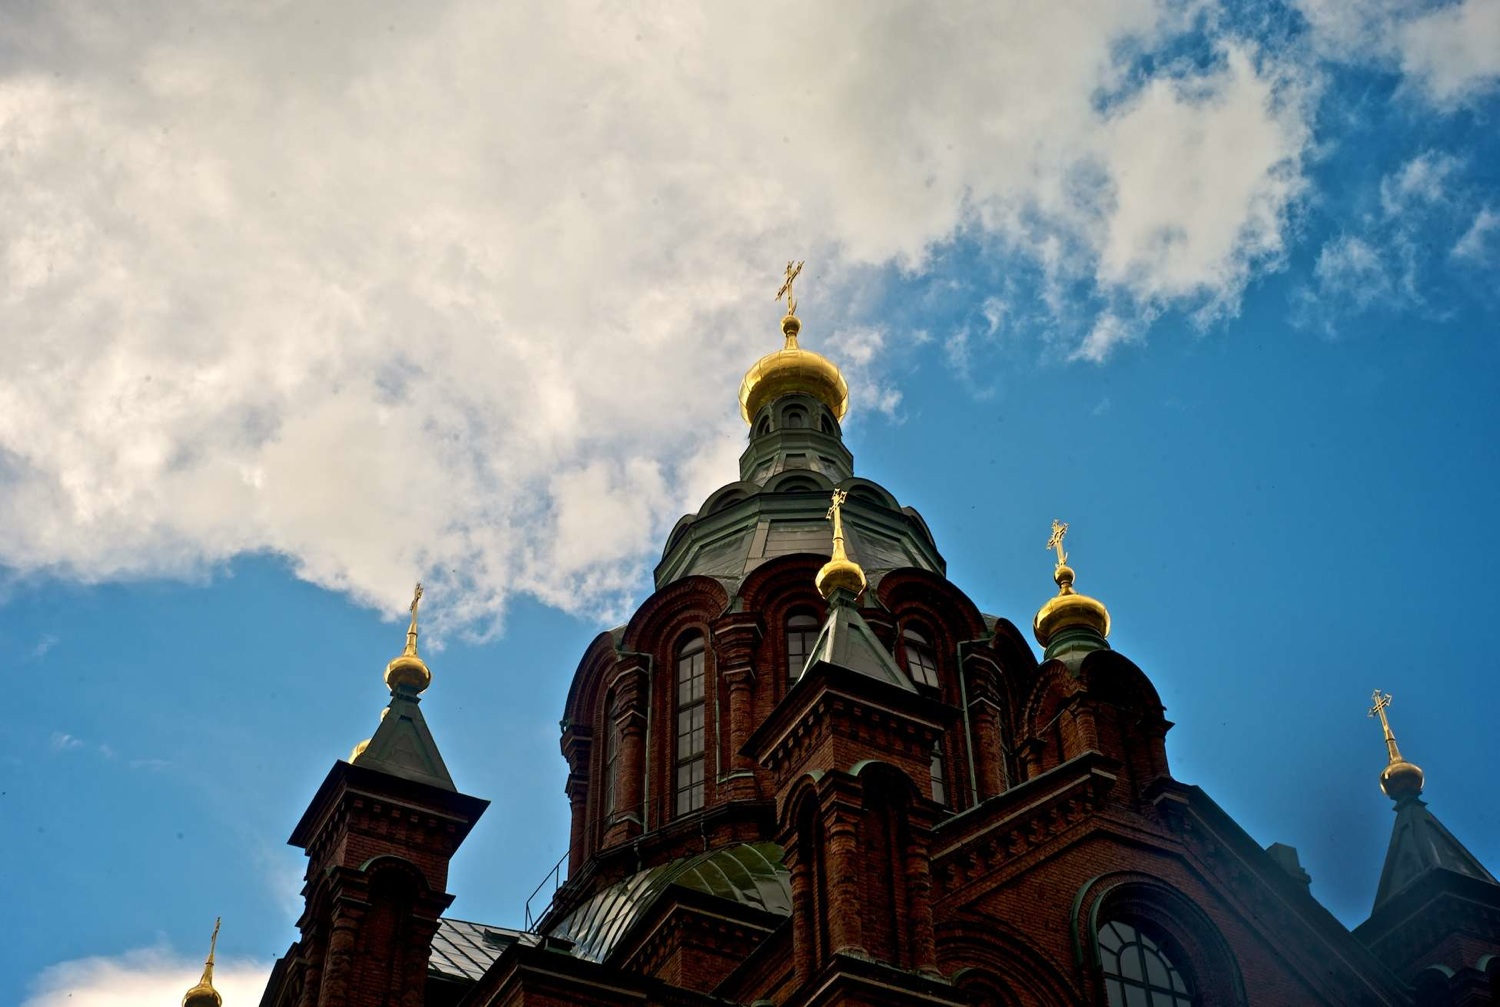 clouds play around the church author soini hannu